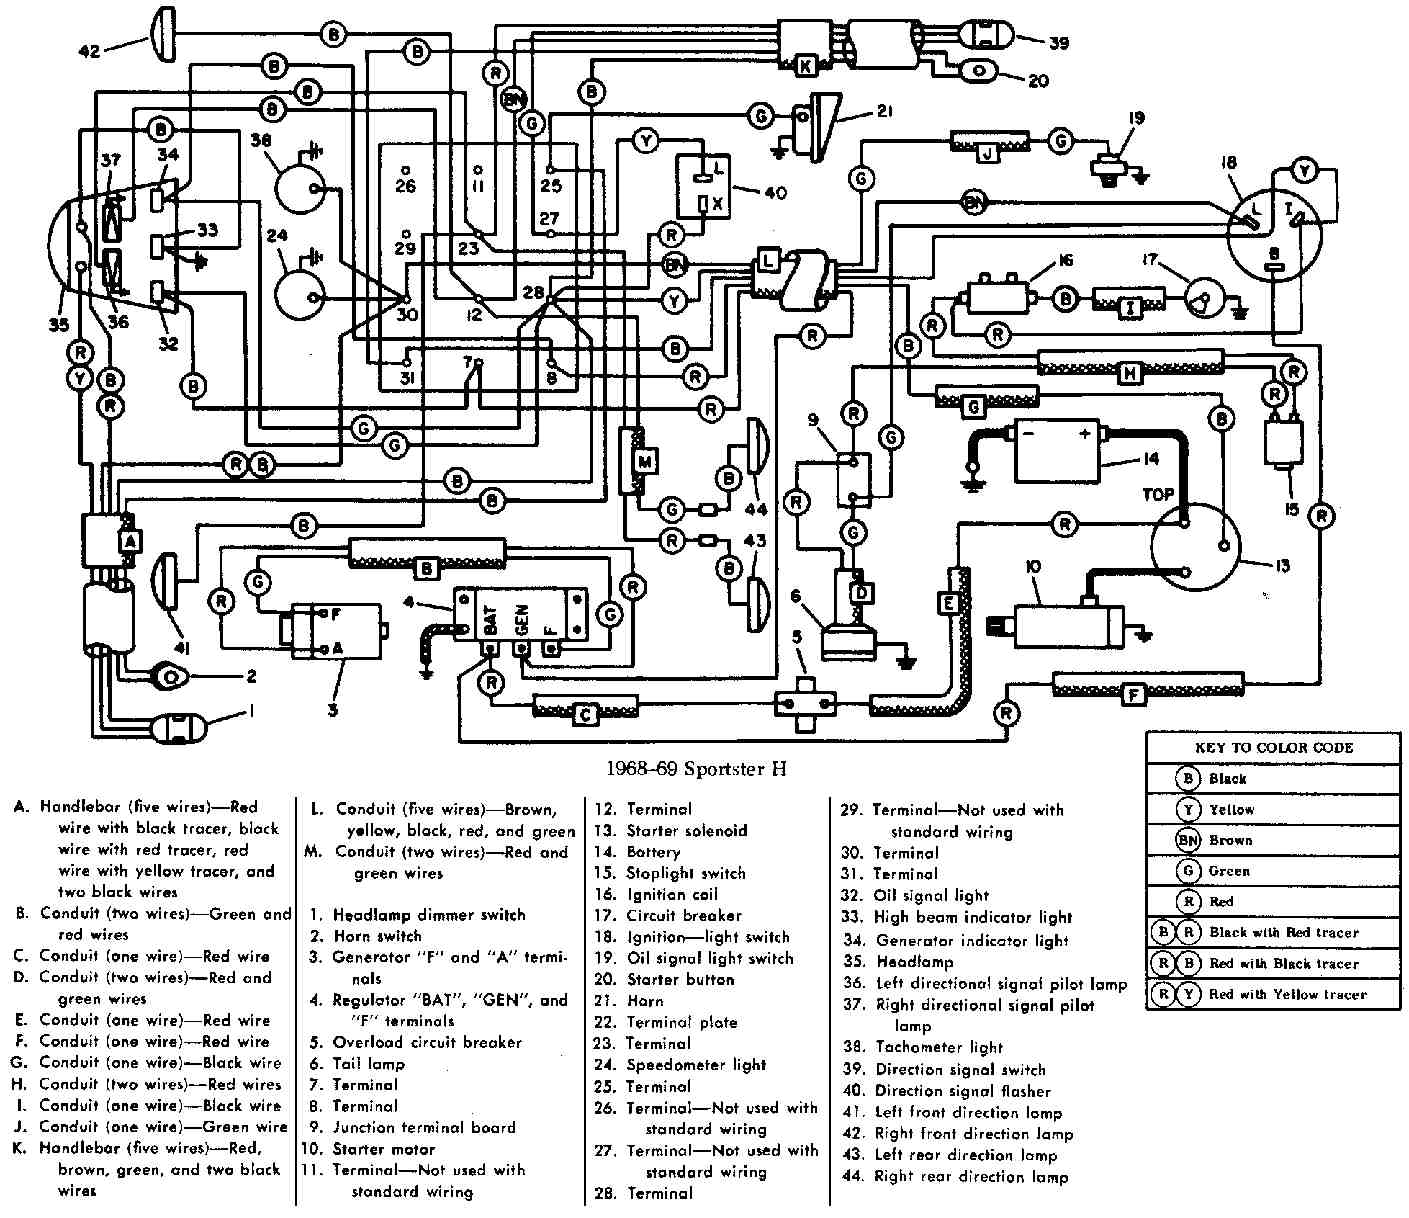 harley davidson motorcycle manuals pdf wiring diagrams fault codes rh motorcycle manual com Harley-Davidson OEM Parts Diagram Harley-Davidson Schematics and Diagrams